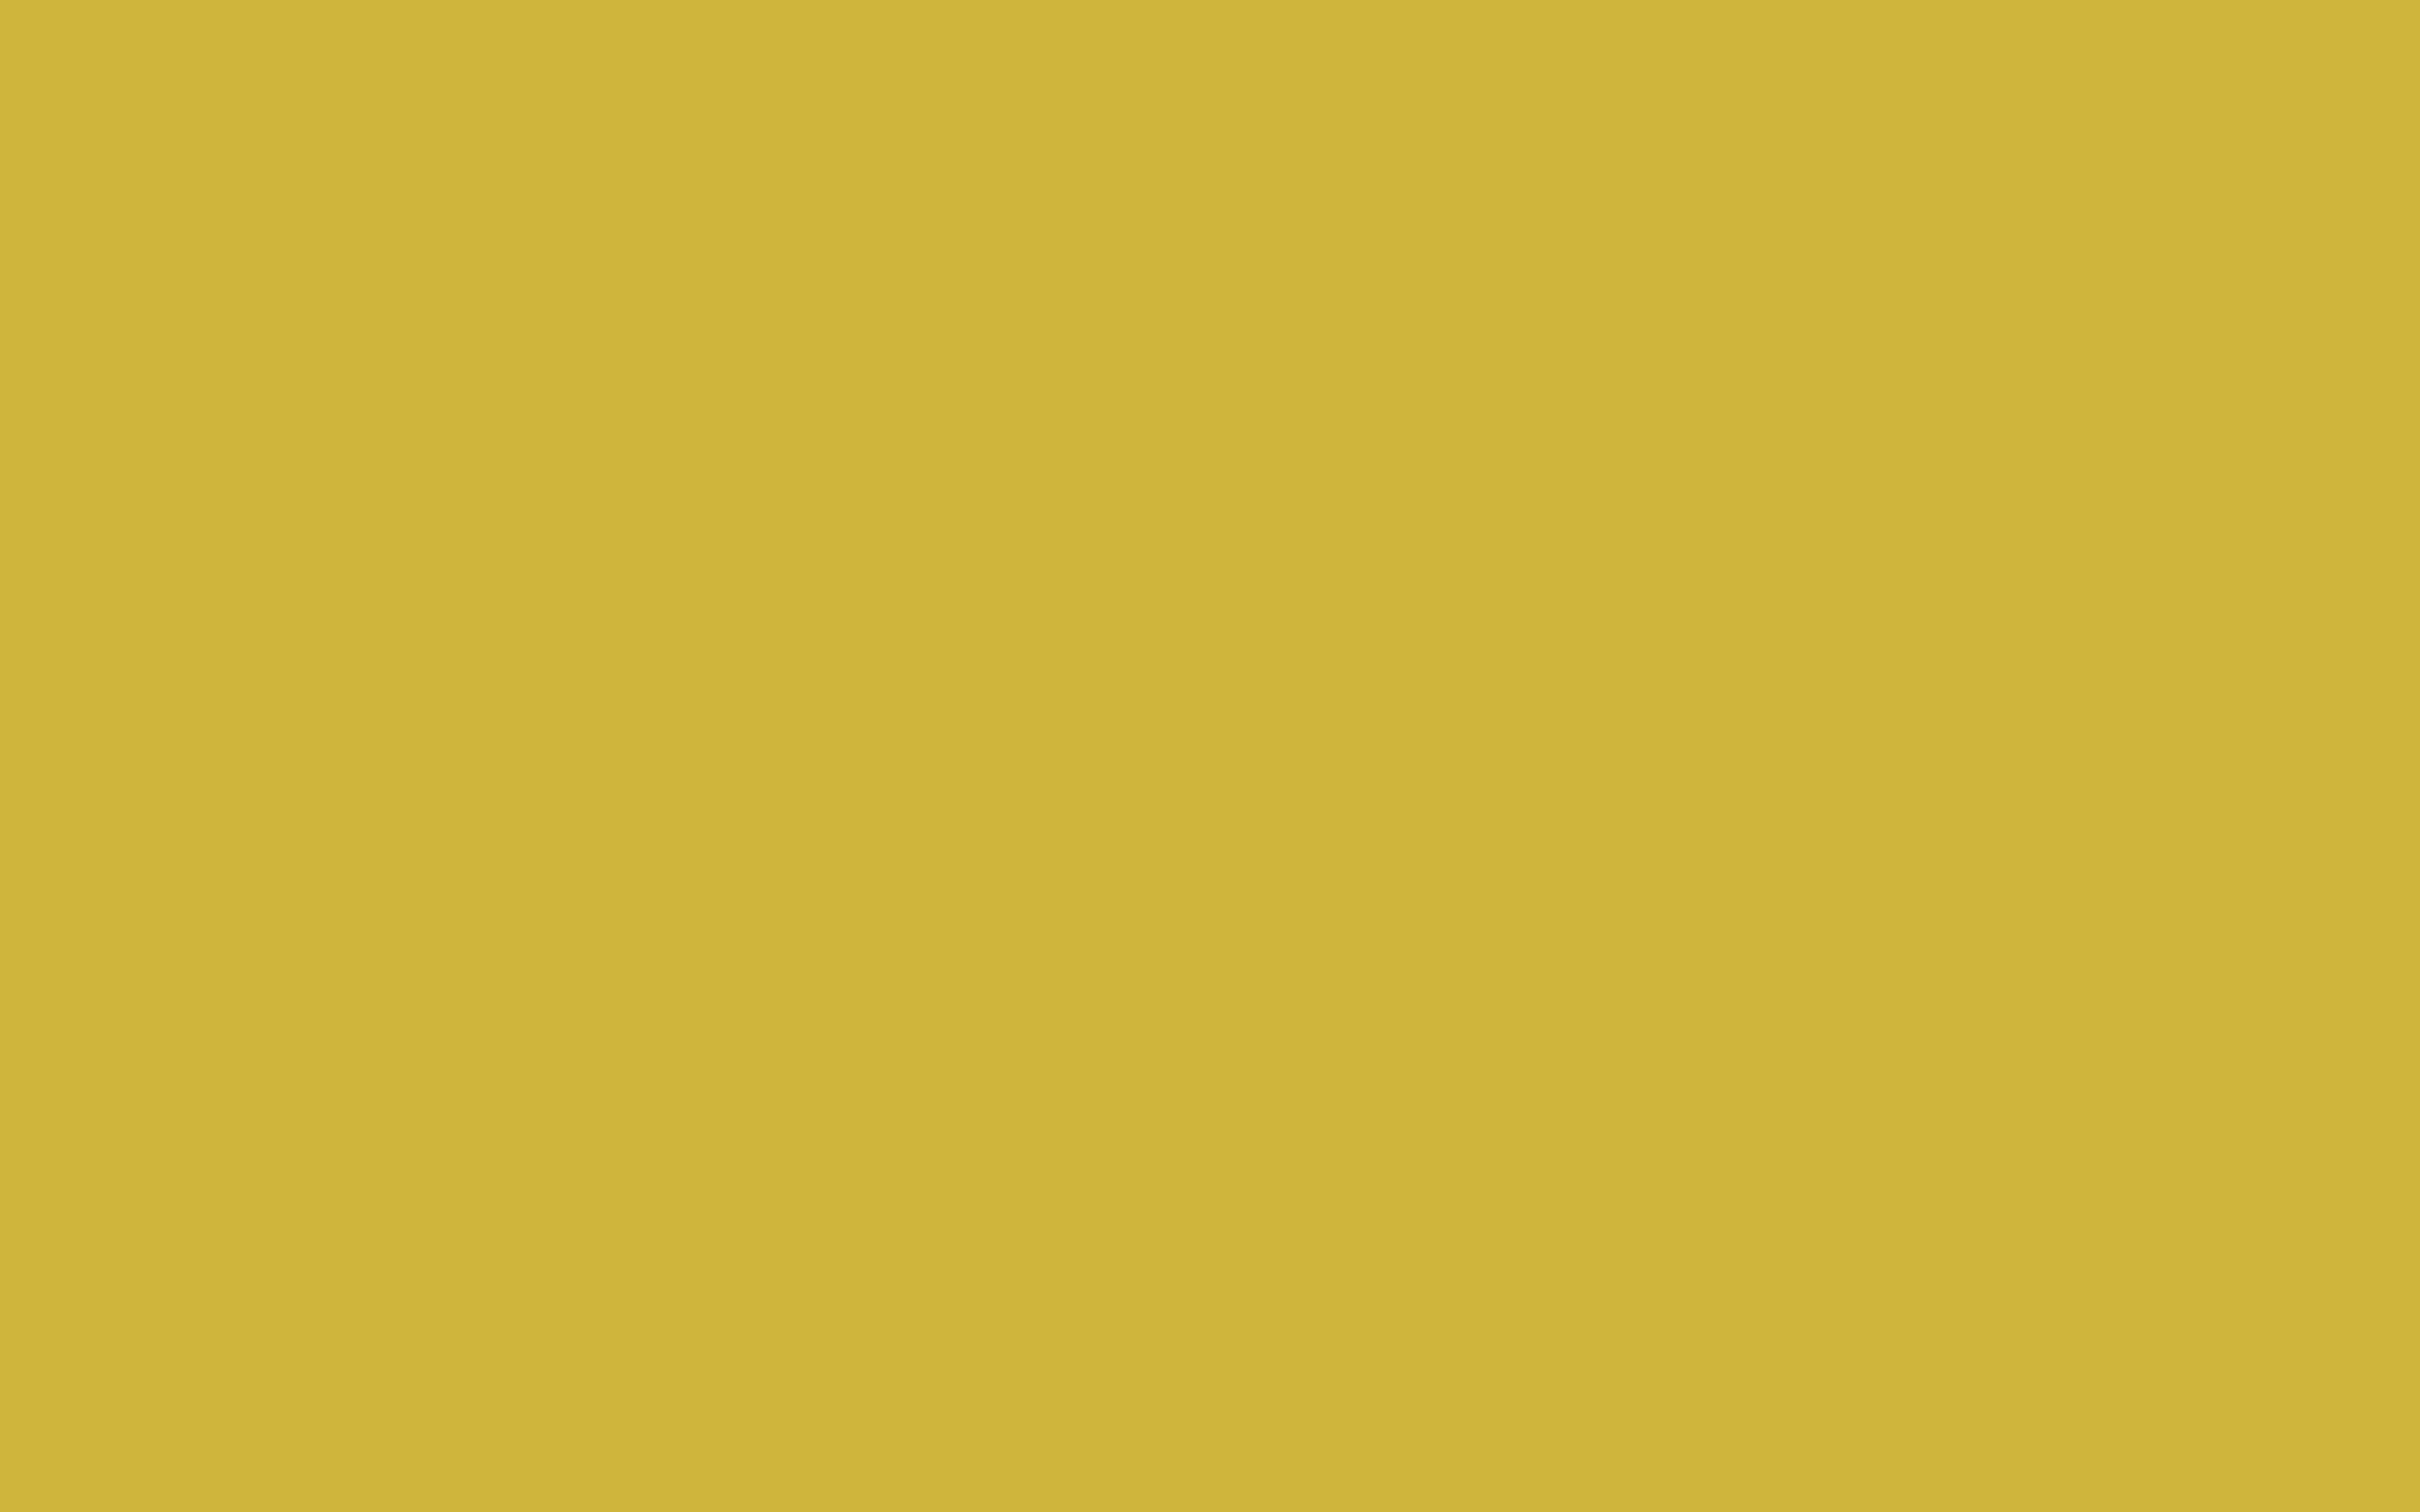 2560x1600 Old Gold Solid Color Background